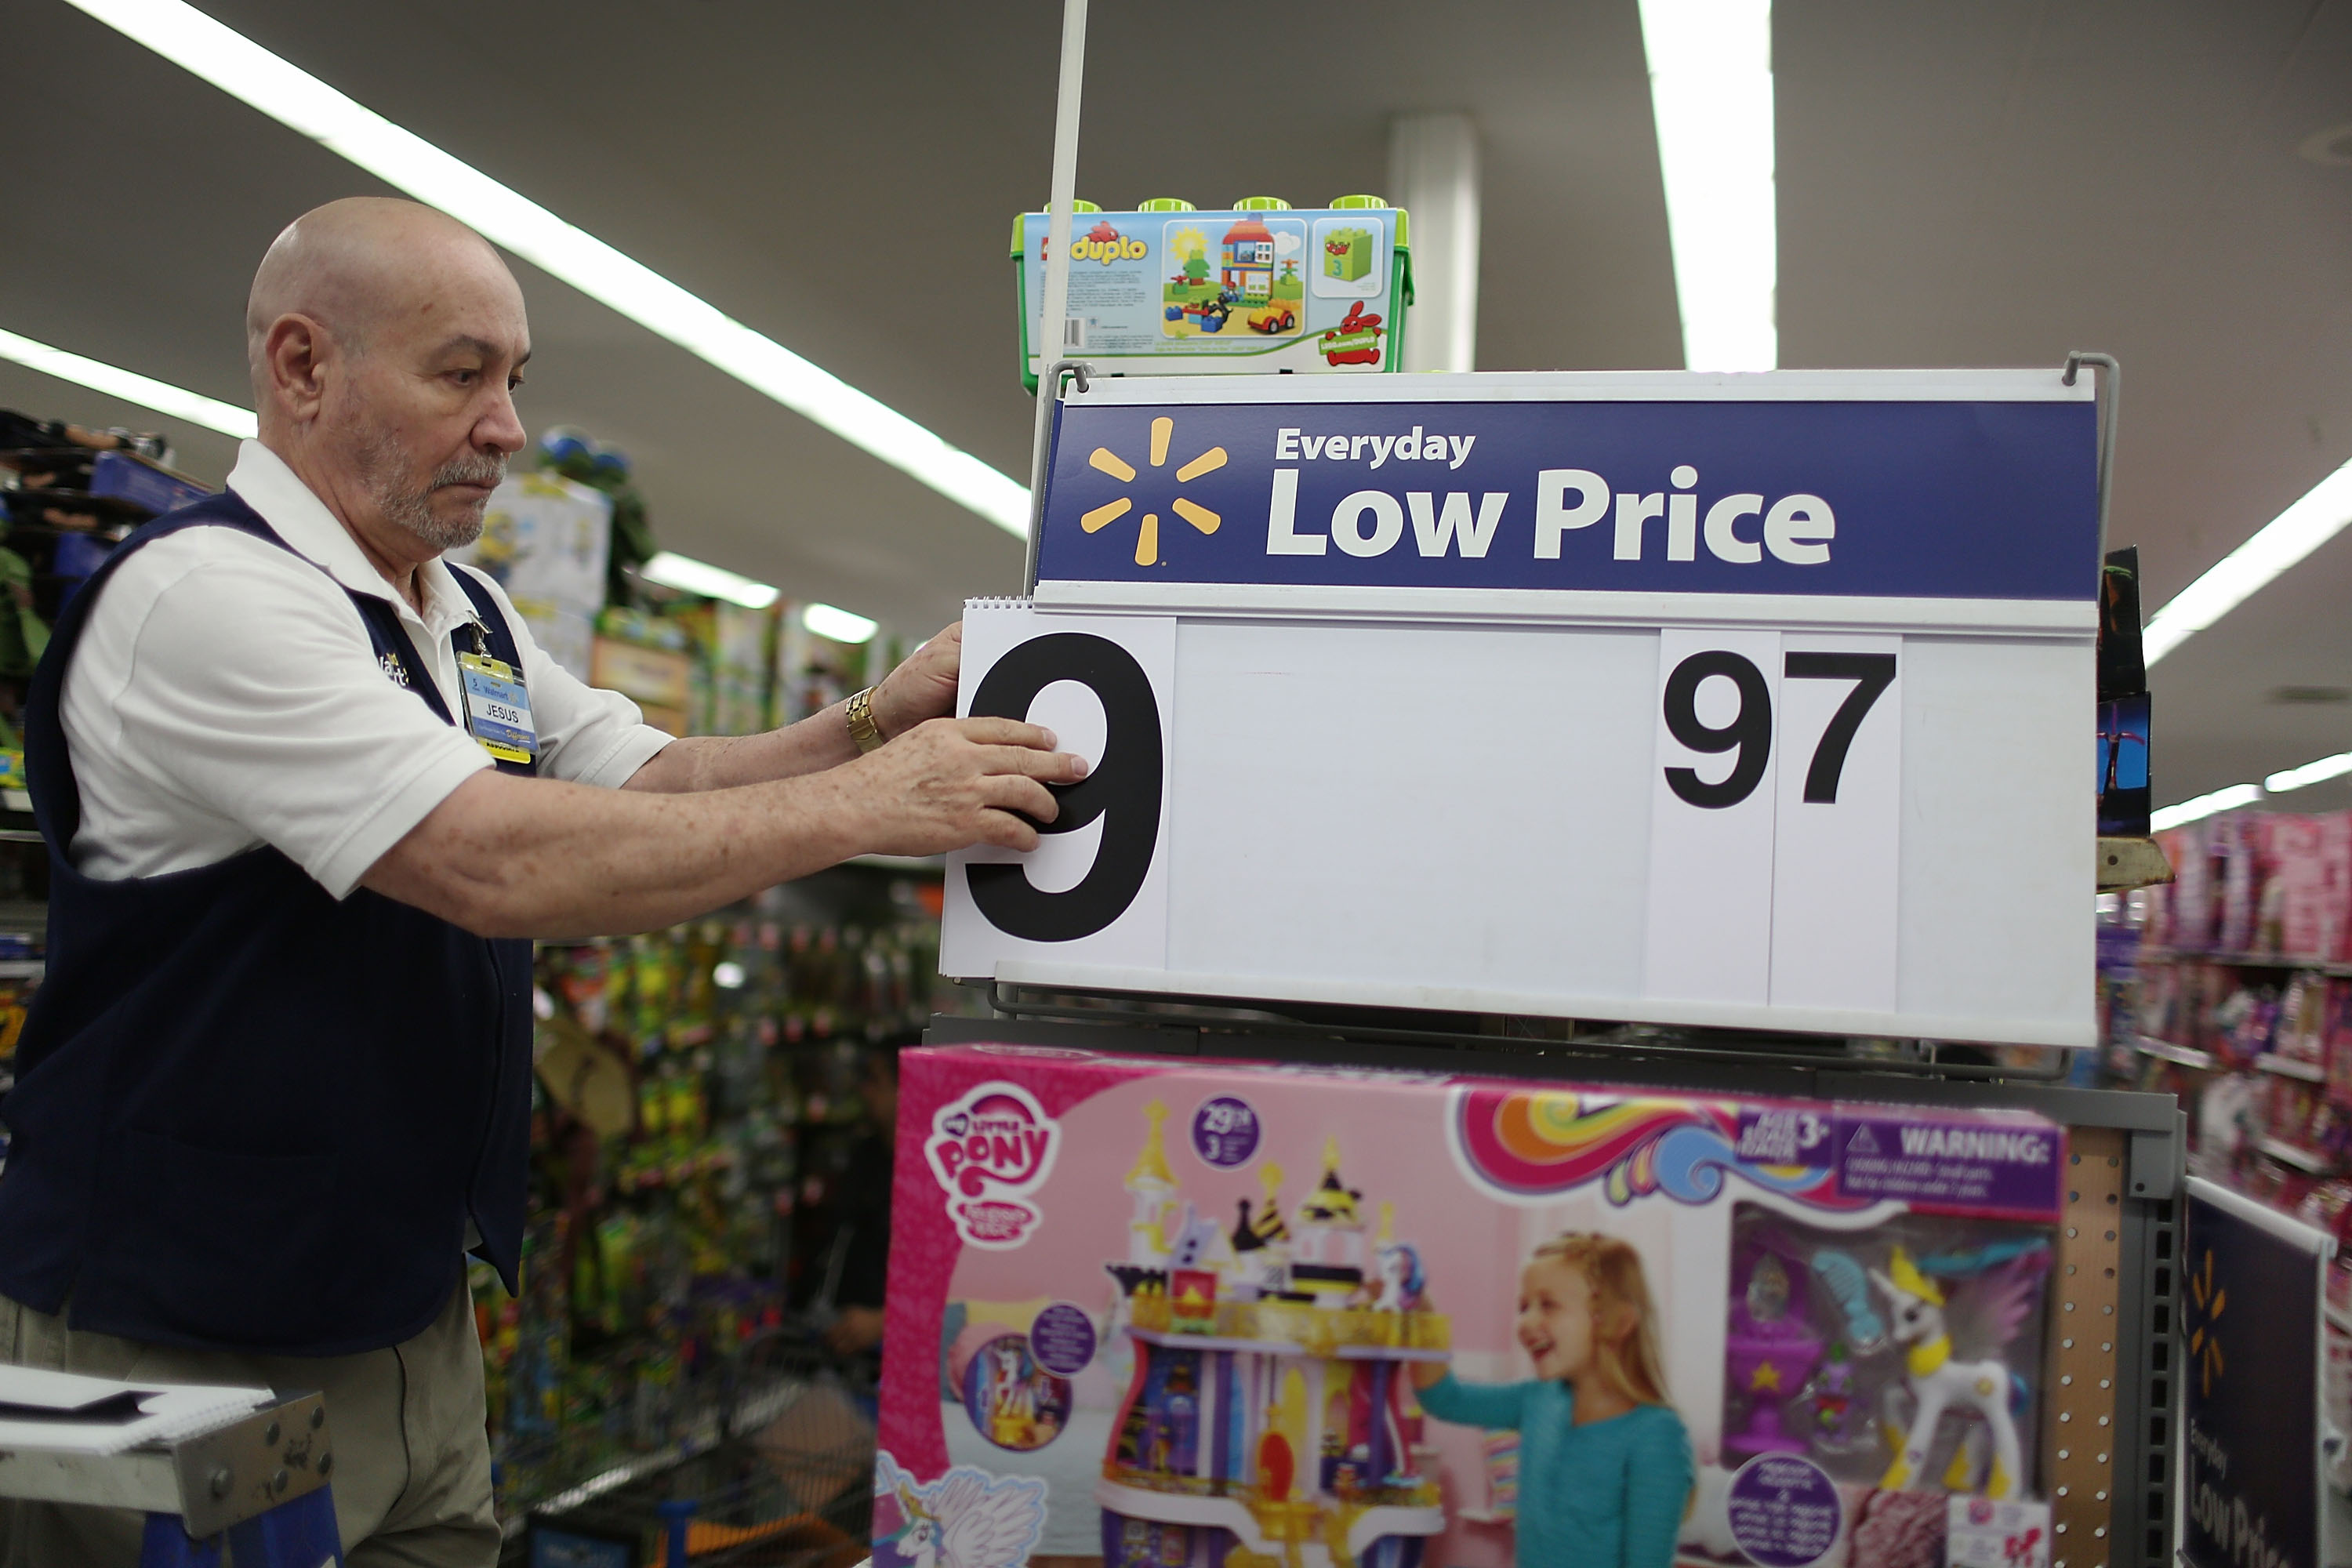 Wal-Mart's second quarter sales surpass its competitors, including Target.